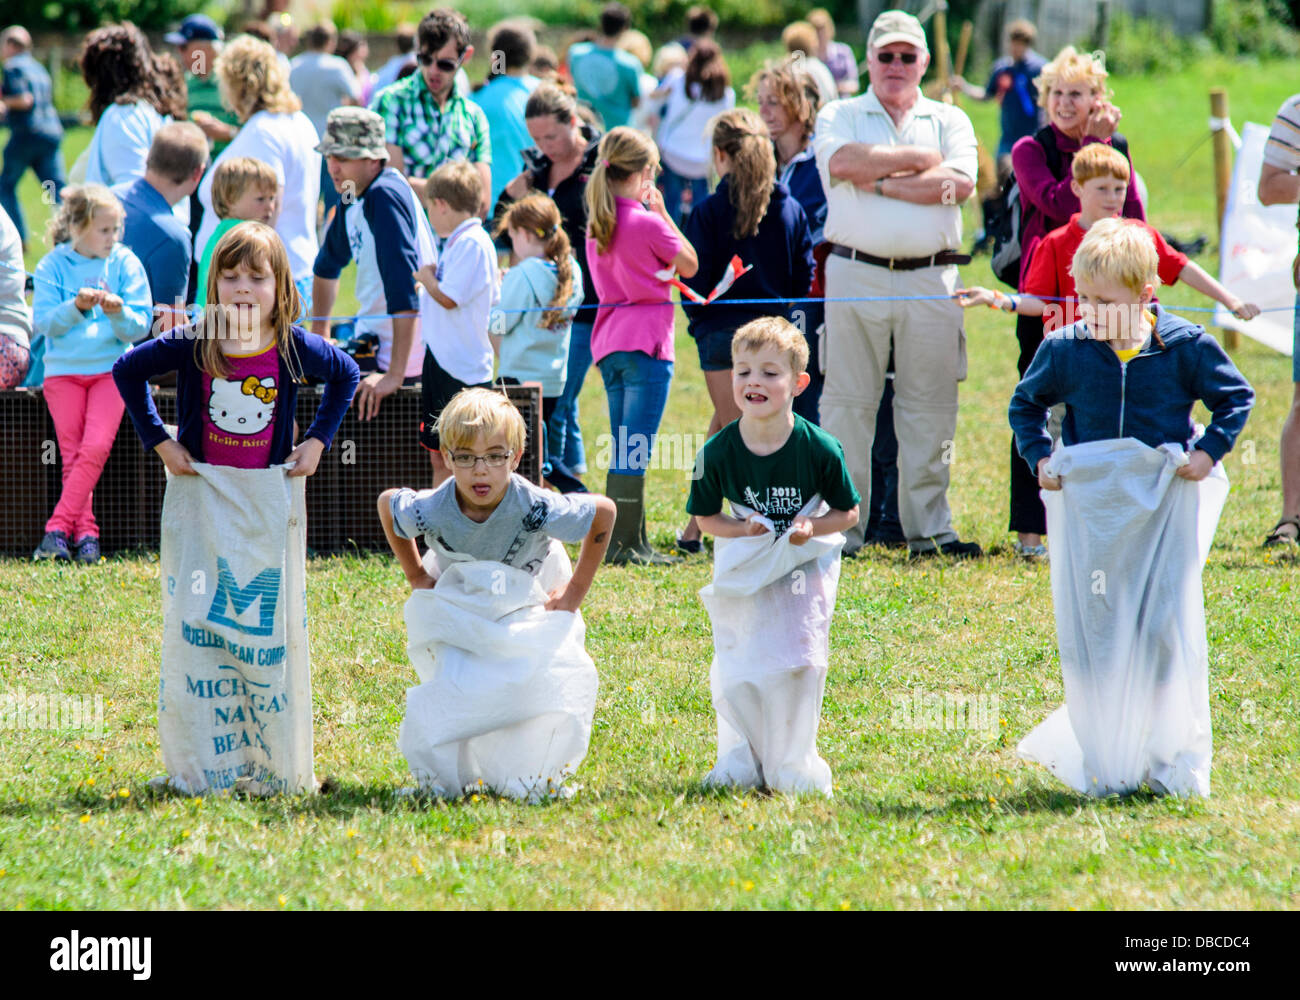 Children games at the Lowland Games - Stock Image